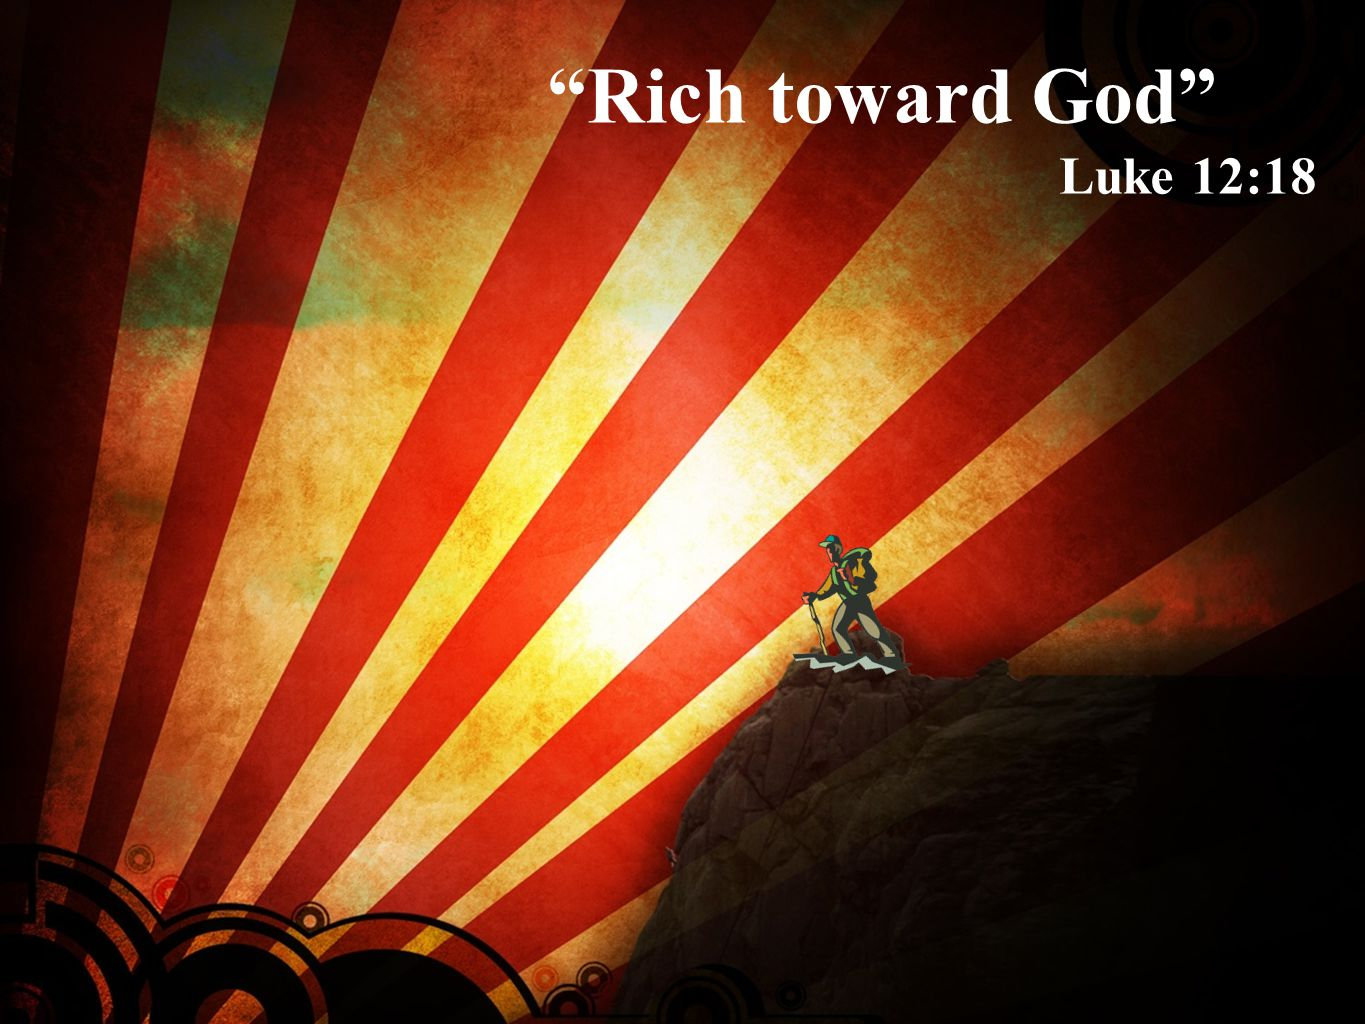 Rich toward God Luke 12:18